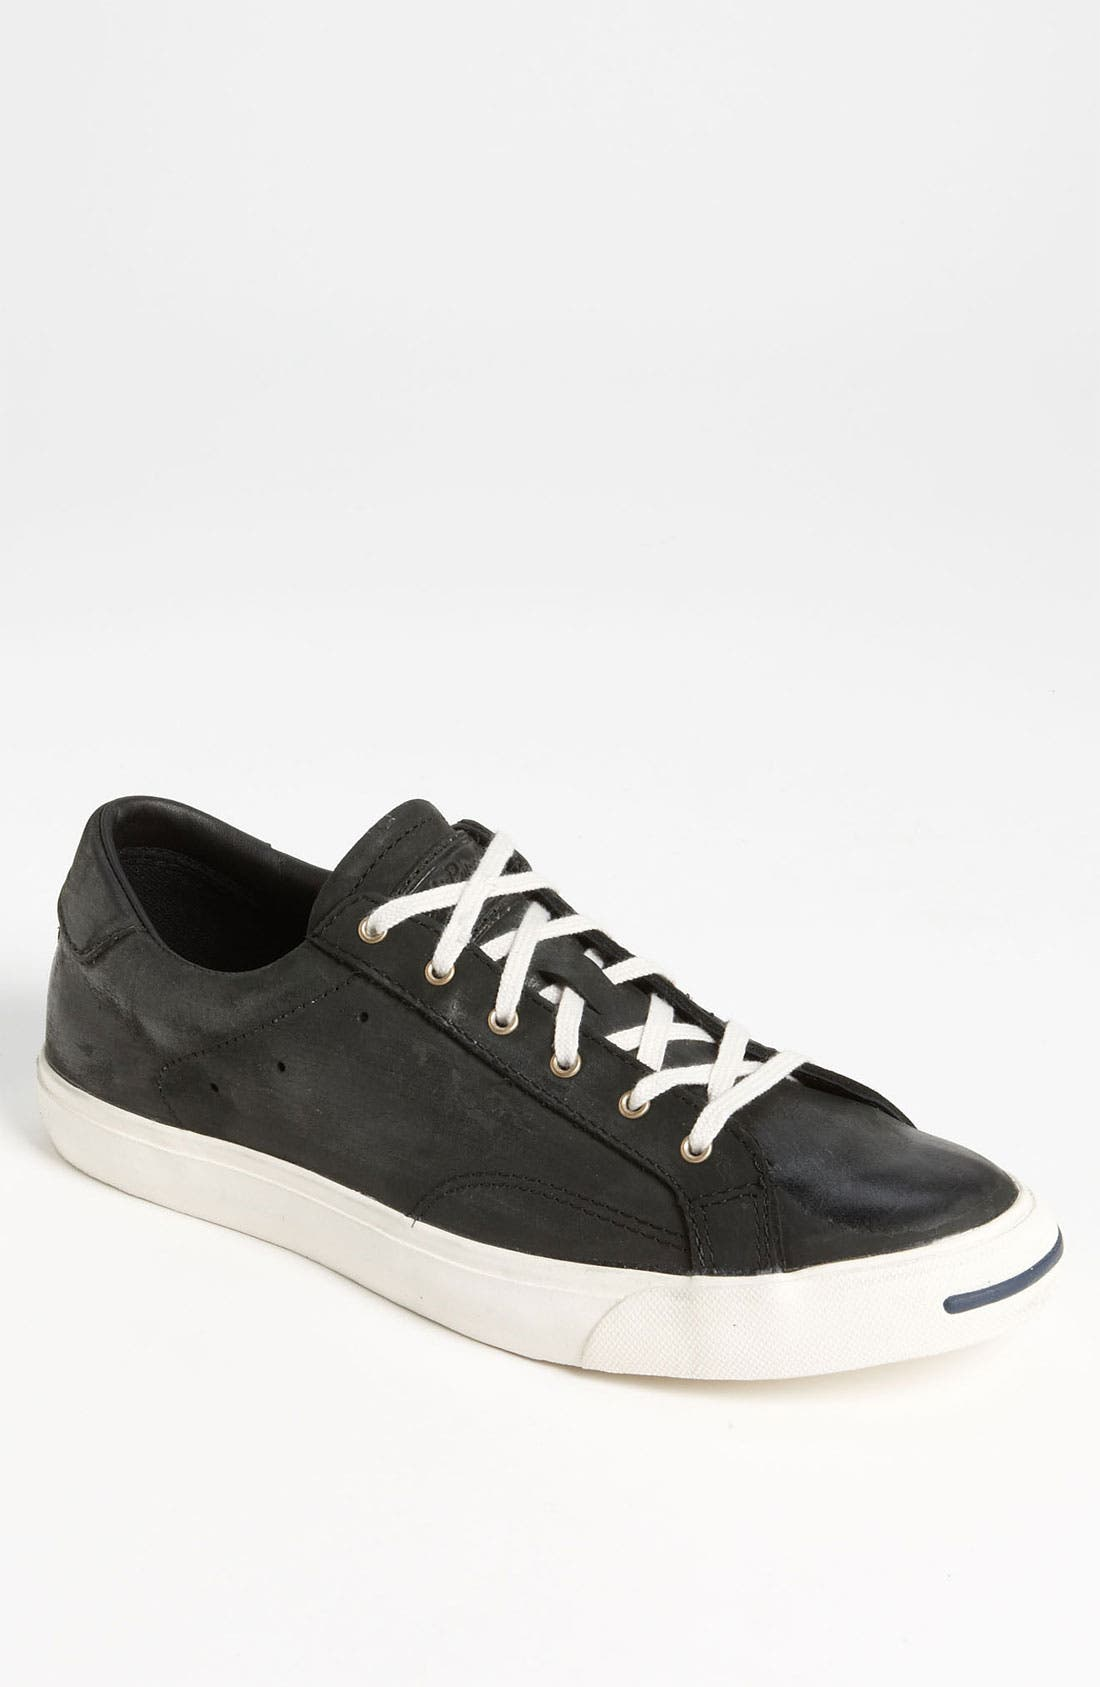 Alternate Image 1 Selected - Converse 'Jack Purcell - Peter' Sneaker (Unisex)